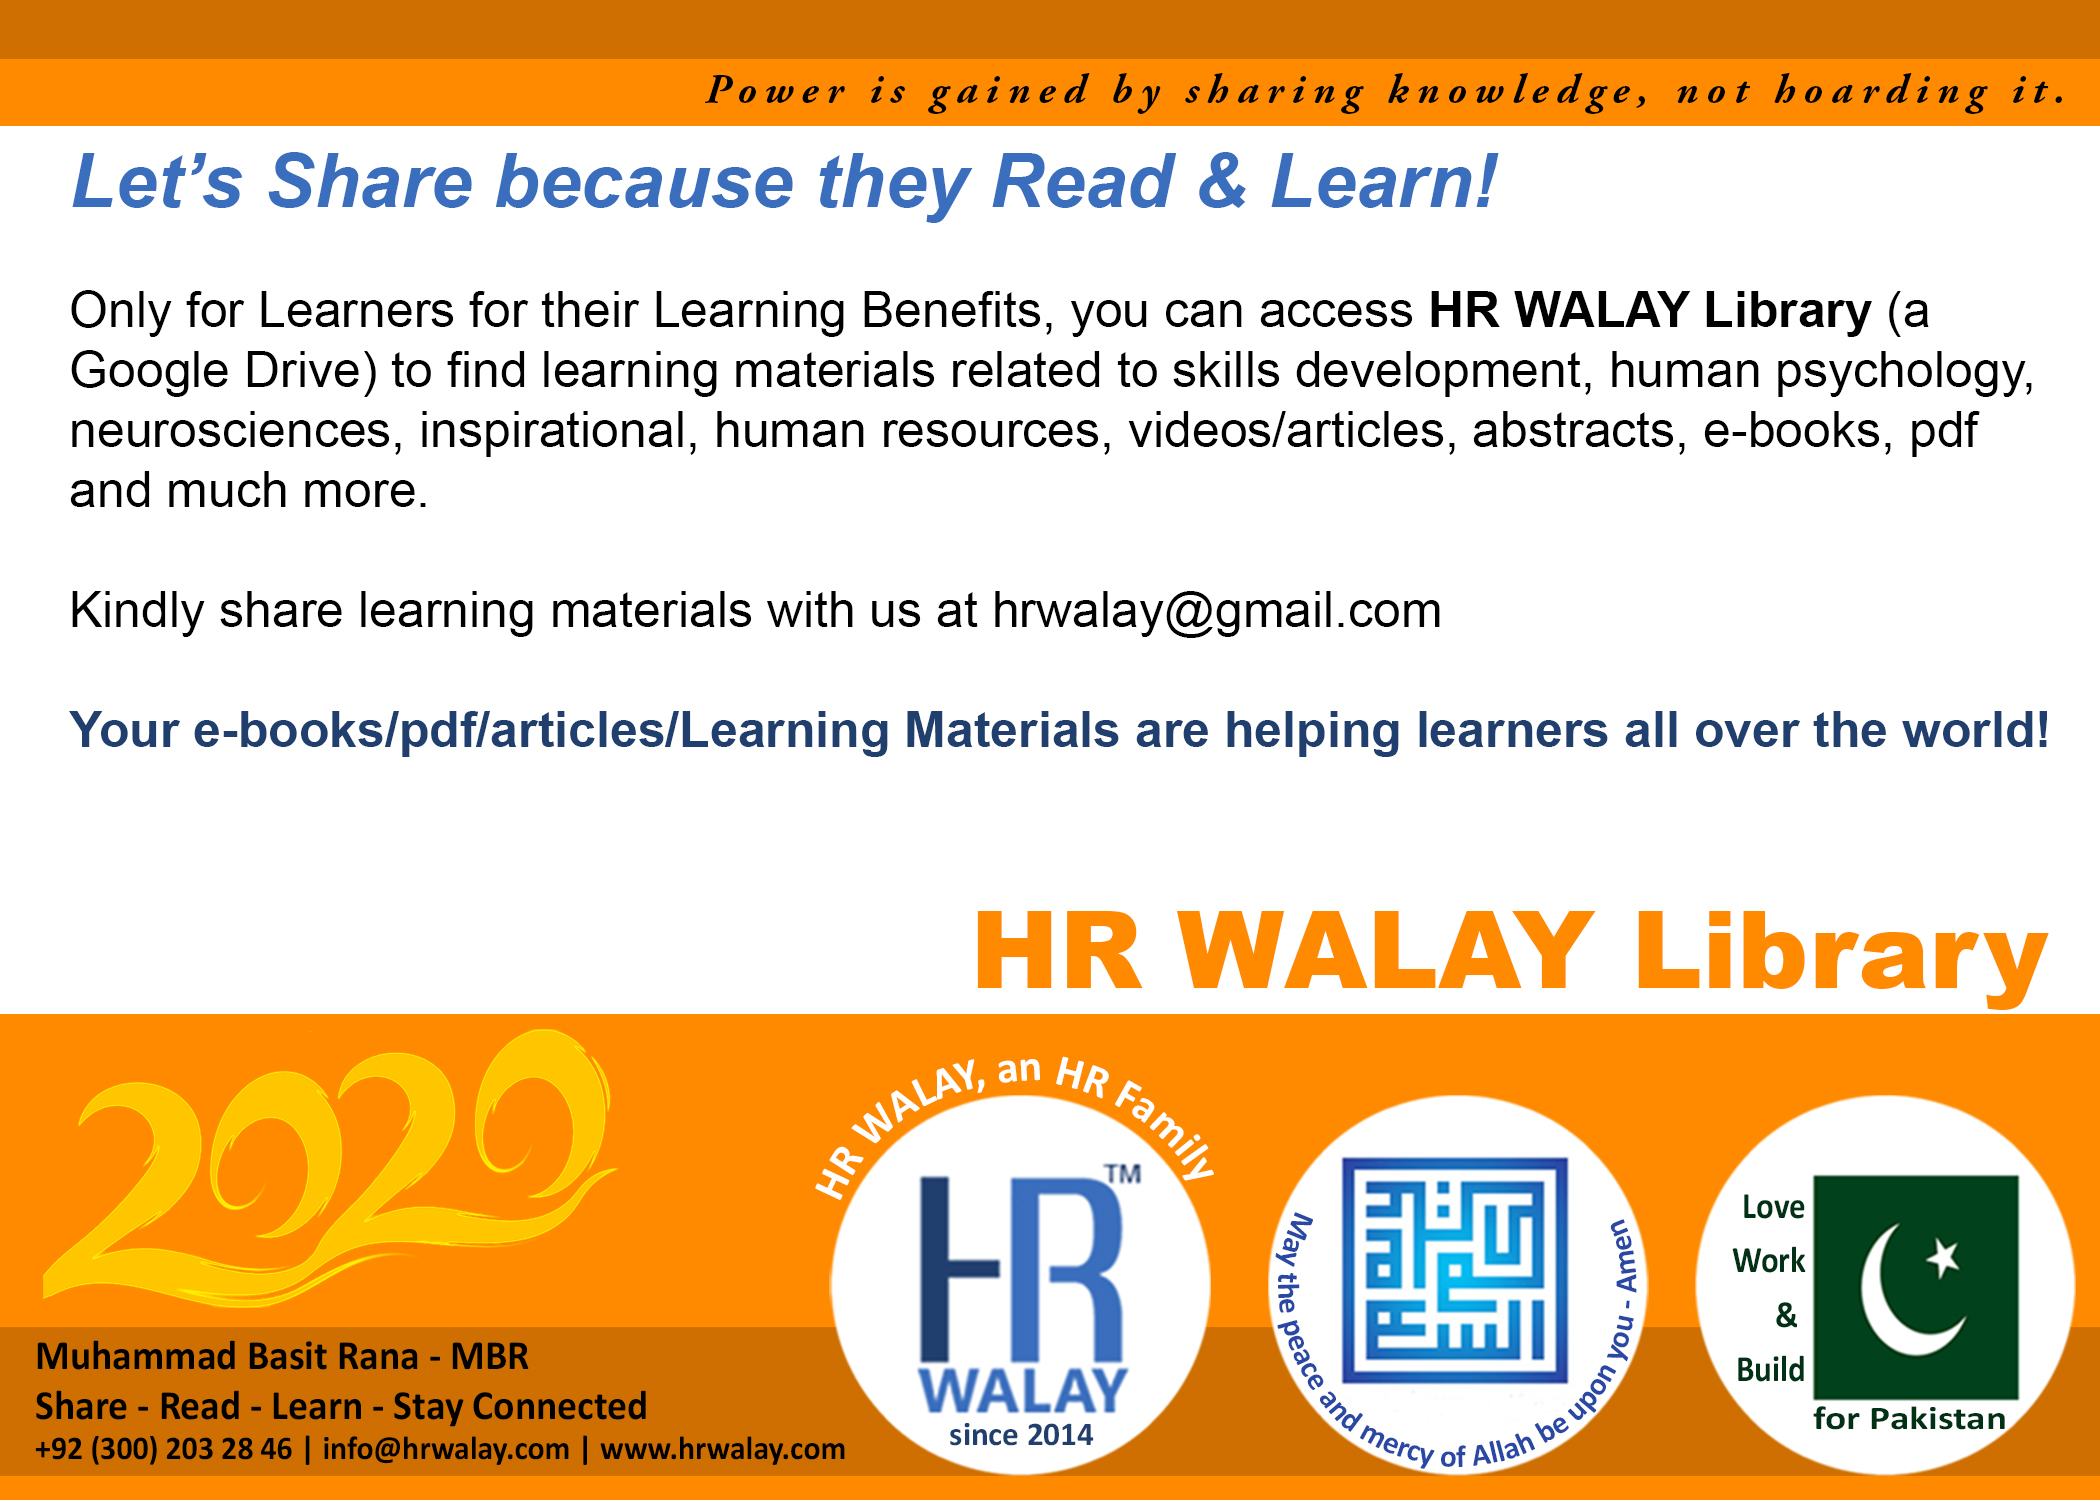 HR Walay Library